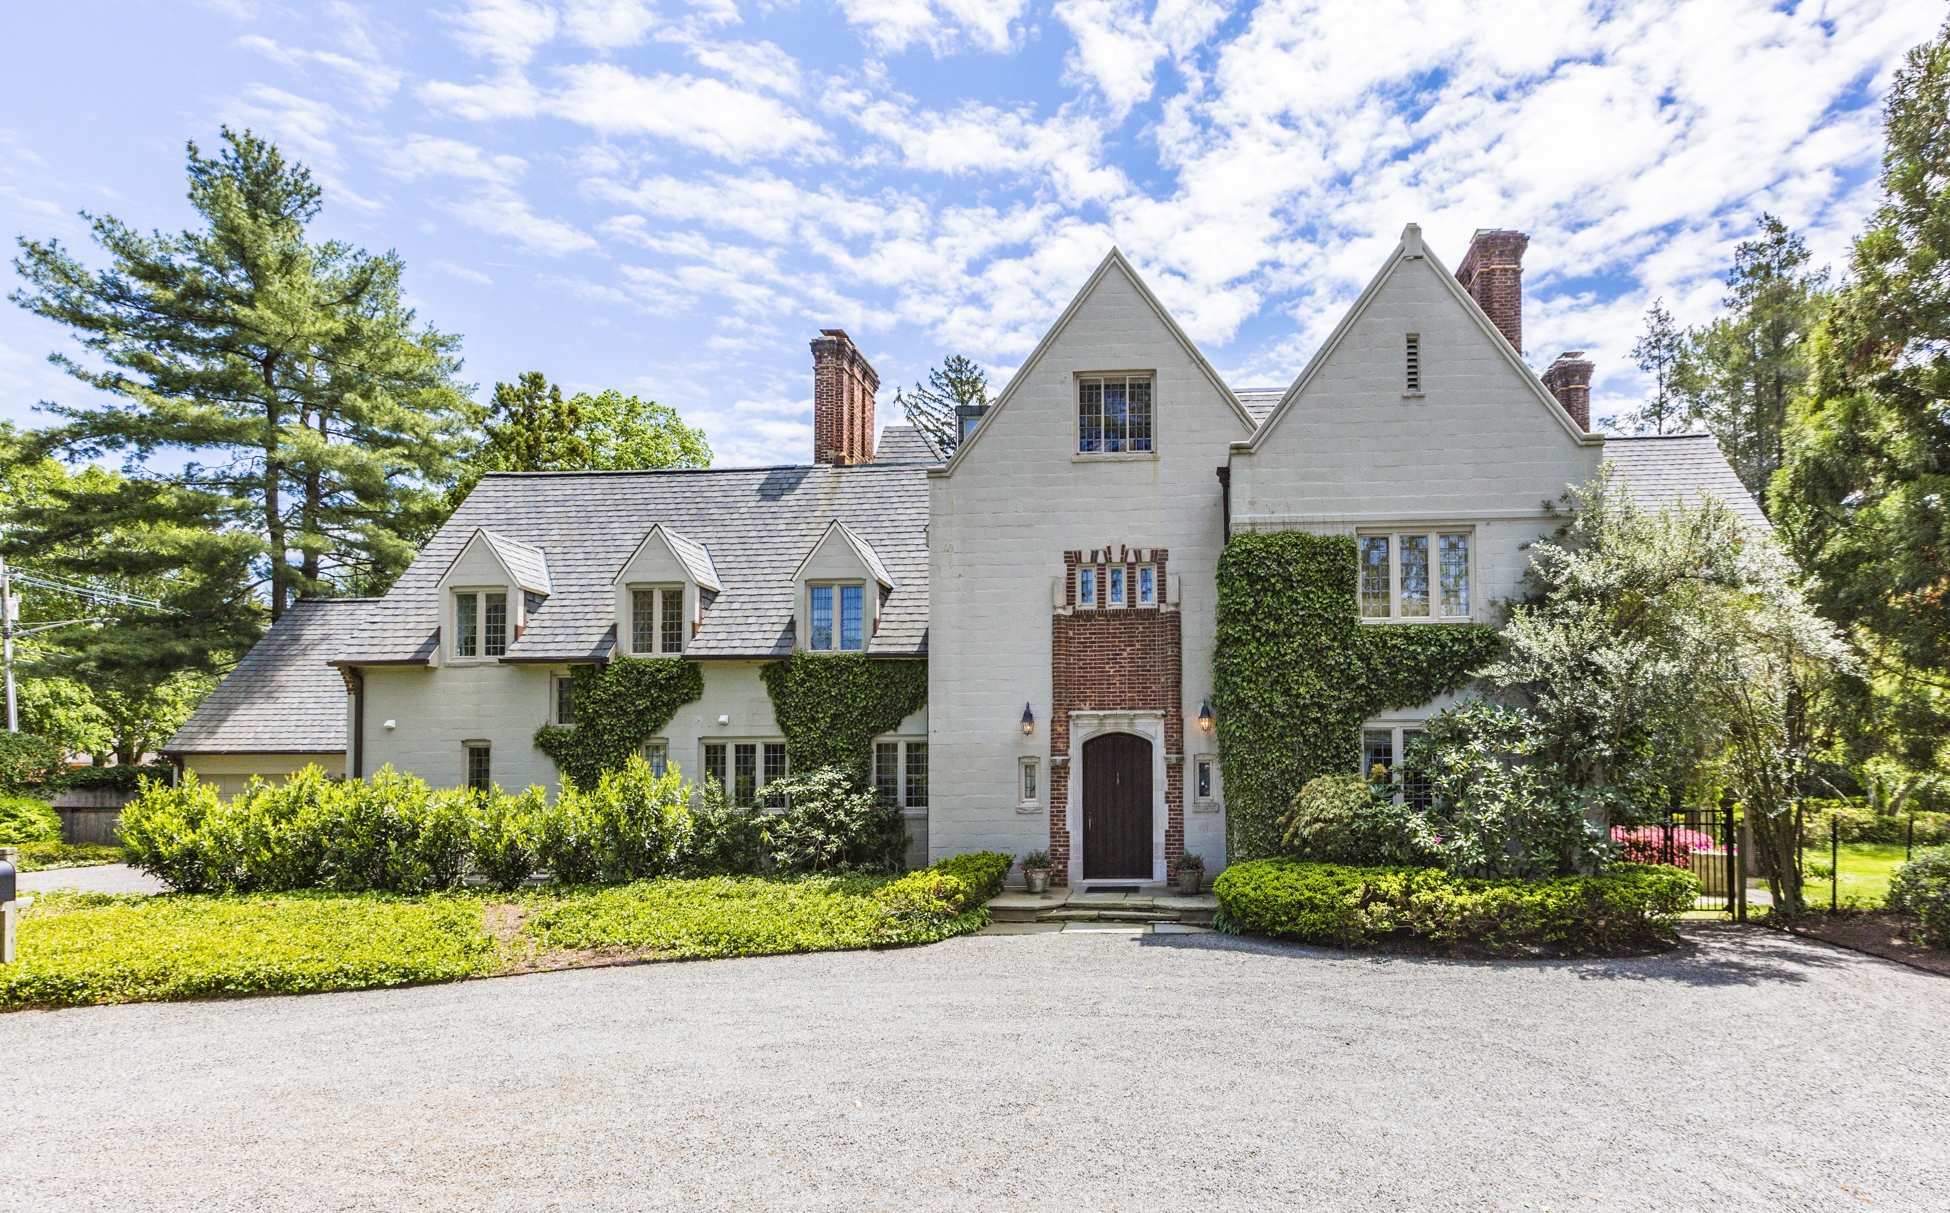 Photo of Normandy-inspired Manor in Princeton